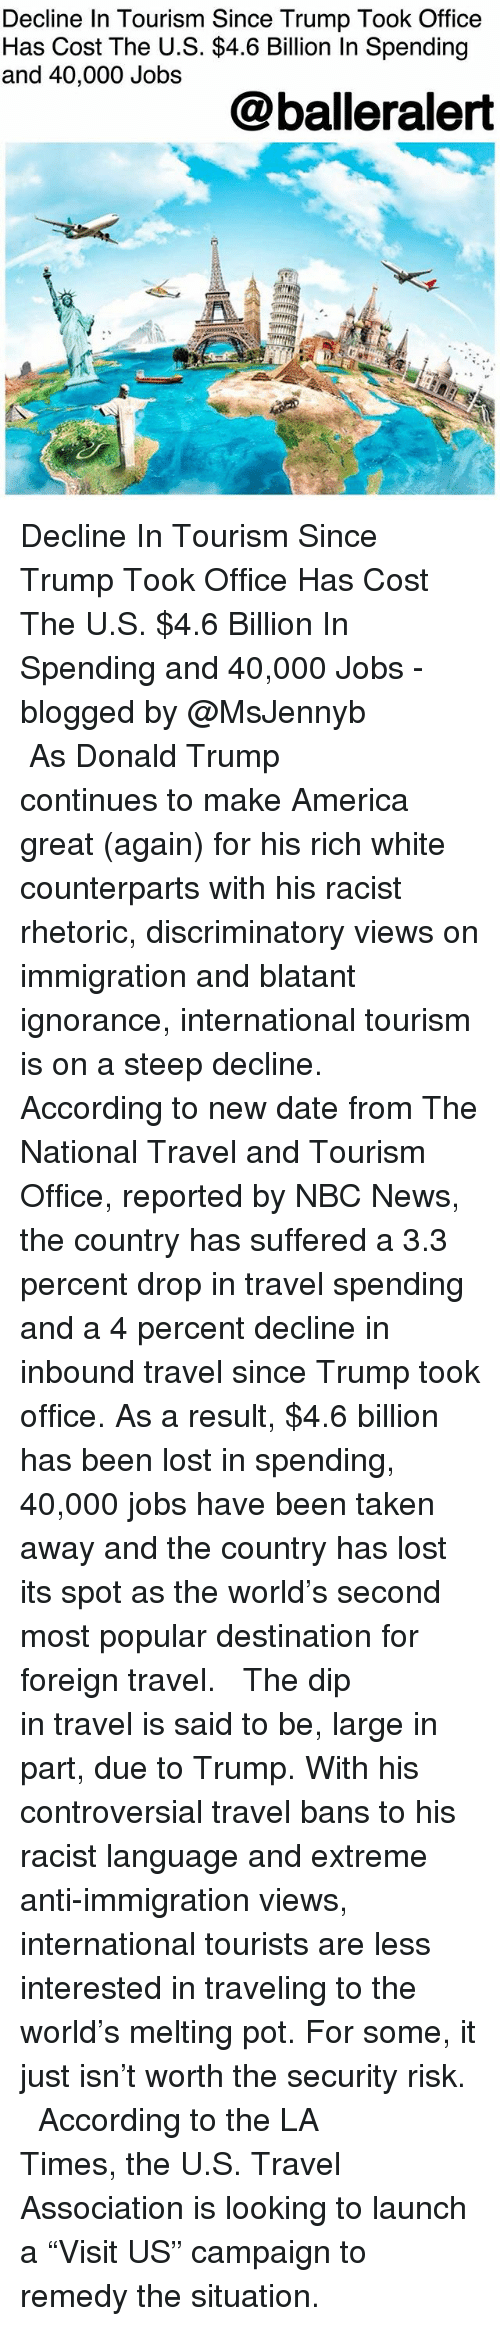 """America, Donald Trump, and Memes: Decline In Tourism Since Trump Took Office  Has Cost The U.S. $4.6 Billion In Spending  and 40,000 Jobs  @balleralert Decline In Tourism Since Trump Took Office Has Cost The U.S. $4.6 Billion In Spending and 40,000 Jobs - blogged by @MsJennyb ⠀⠀⠀⠀⠀⠀⠀ ⠀⠀⠀⠀⠀⠀⠀ As Donald Trump continues to make America great (again) for his rich white counterparts with his racist rhetoric, discriminatory views on immigration and blatant ignorance, international tourism is on a steep decline. ⠀⠀⠀⠀⠀⠀⠀ ⠀⠀⠀⠀⠀⠀⠀ According to new date from The National Travel and Tourism Office, reported by NBC News, the country has suffered a 3.3 percent drop in travel spending and a 4 percent decline in inbound travel since Trump took office. As a result, $4.6 billion has been lost in spending, 40,000 jobs have been taken away and the country has lost its spot as the world's second most popular destination for foreign travel. ⠀⠀⠀⠀⠀⠀⠀ ⠀⠀⠀⠀⠀⠀⠀ The dip in travel is said to be, large in part, due to Trump. With his controversial travel bans to his racist language and extreme anti-immigration views, international tourists are less interested in traveling to the world's melting pot. For some, it just isn't worth the security risk. ⠀⠀⠀⠀⠀⠀⠀ ⠀⠀⠀⠀⠀⠀⠀ According to the LA Times, the U.S. Travel Association is looking to launch a """"Visit US"""" campaign to remedy the situation."""